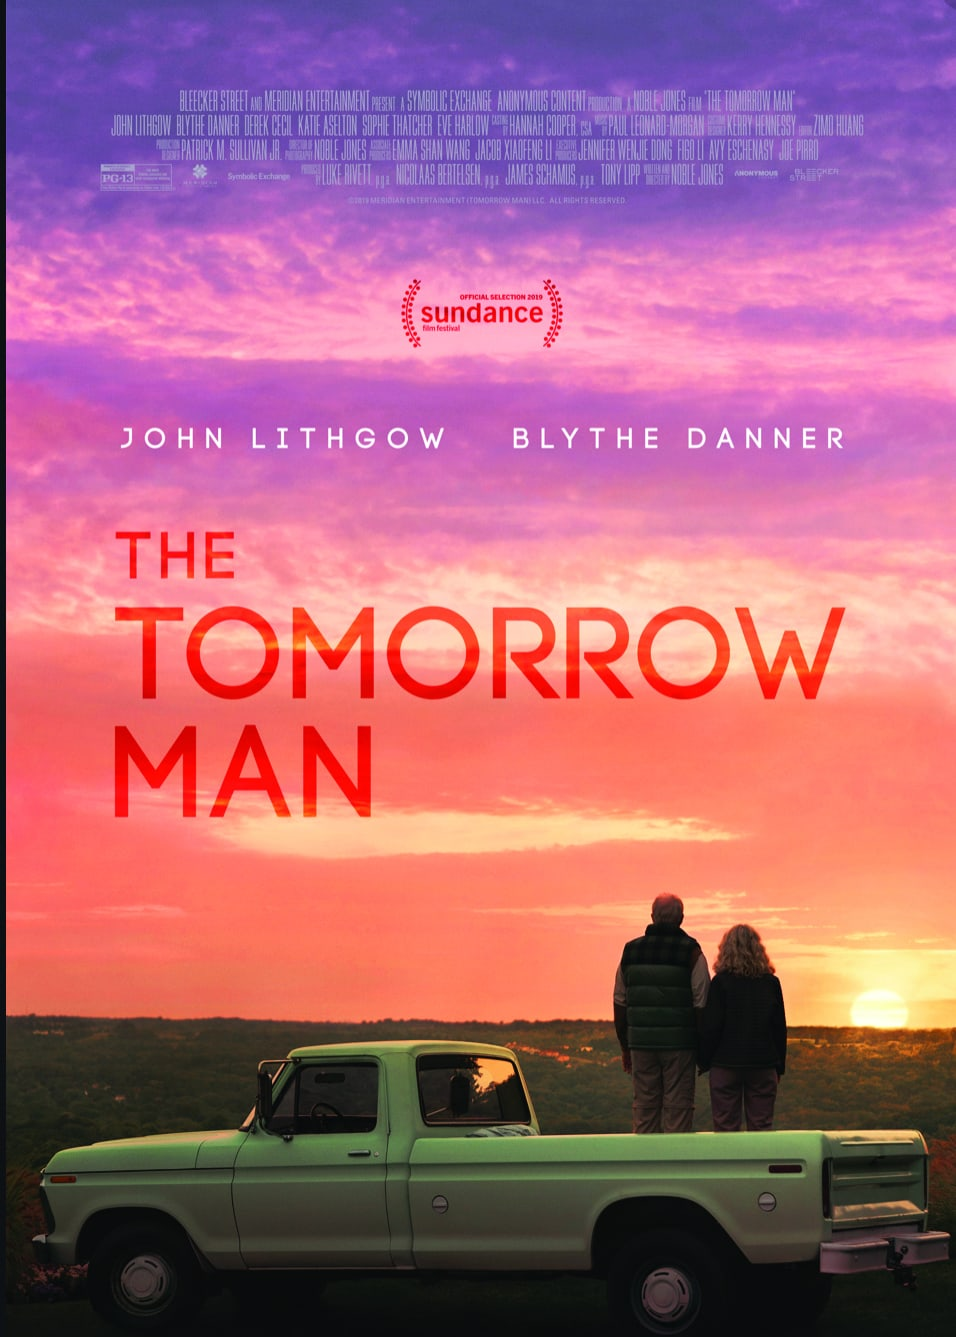 The Tomorrow Man's characters are stuck in the past